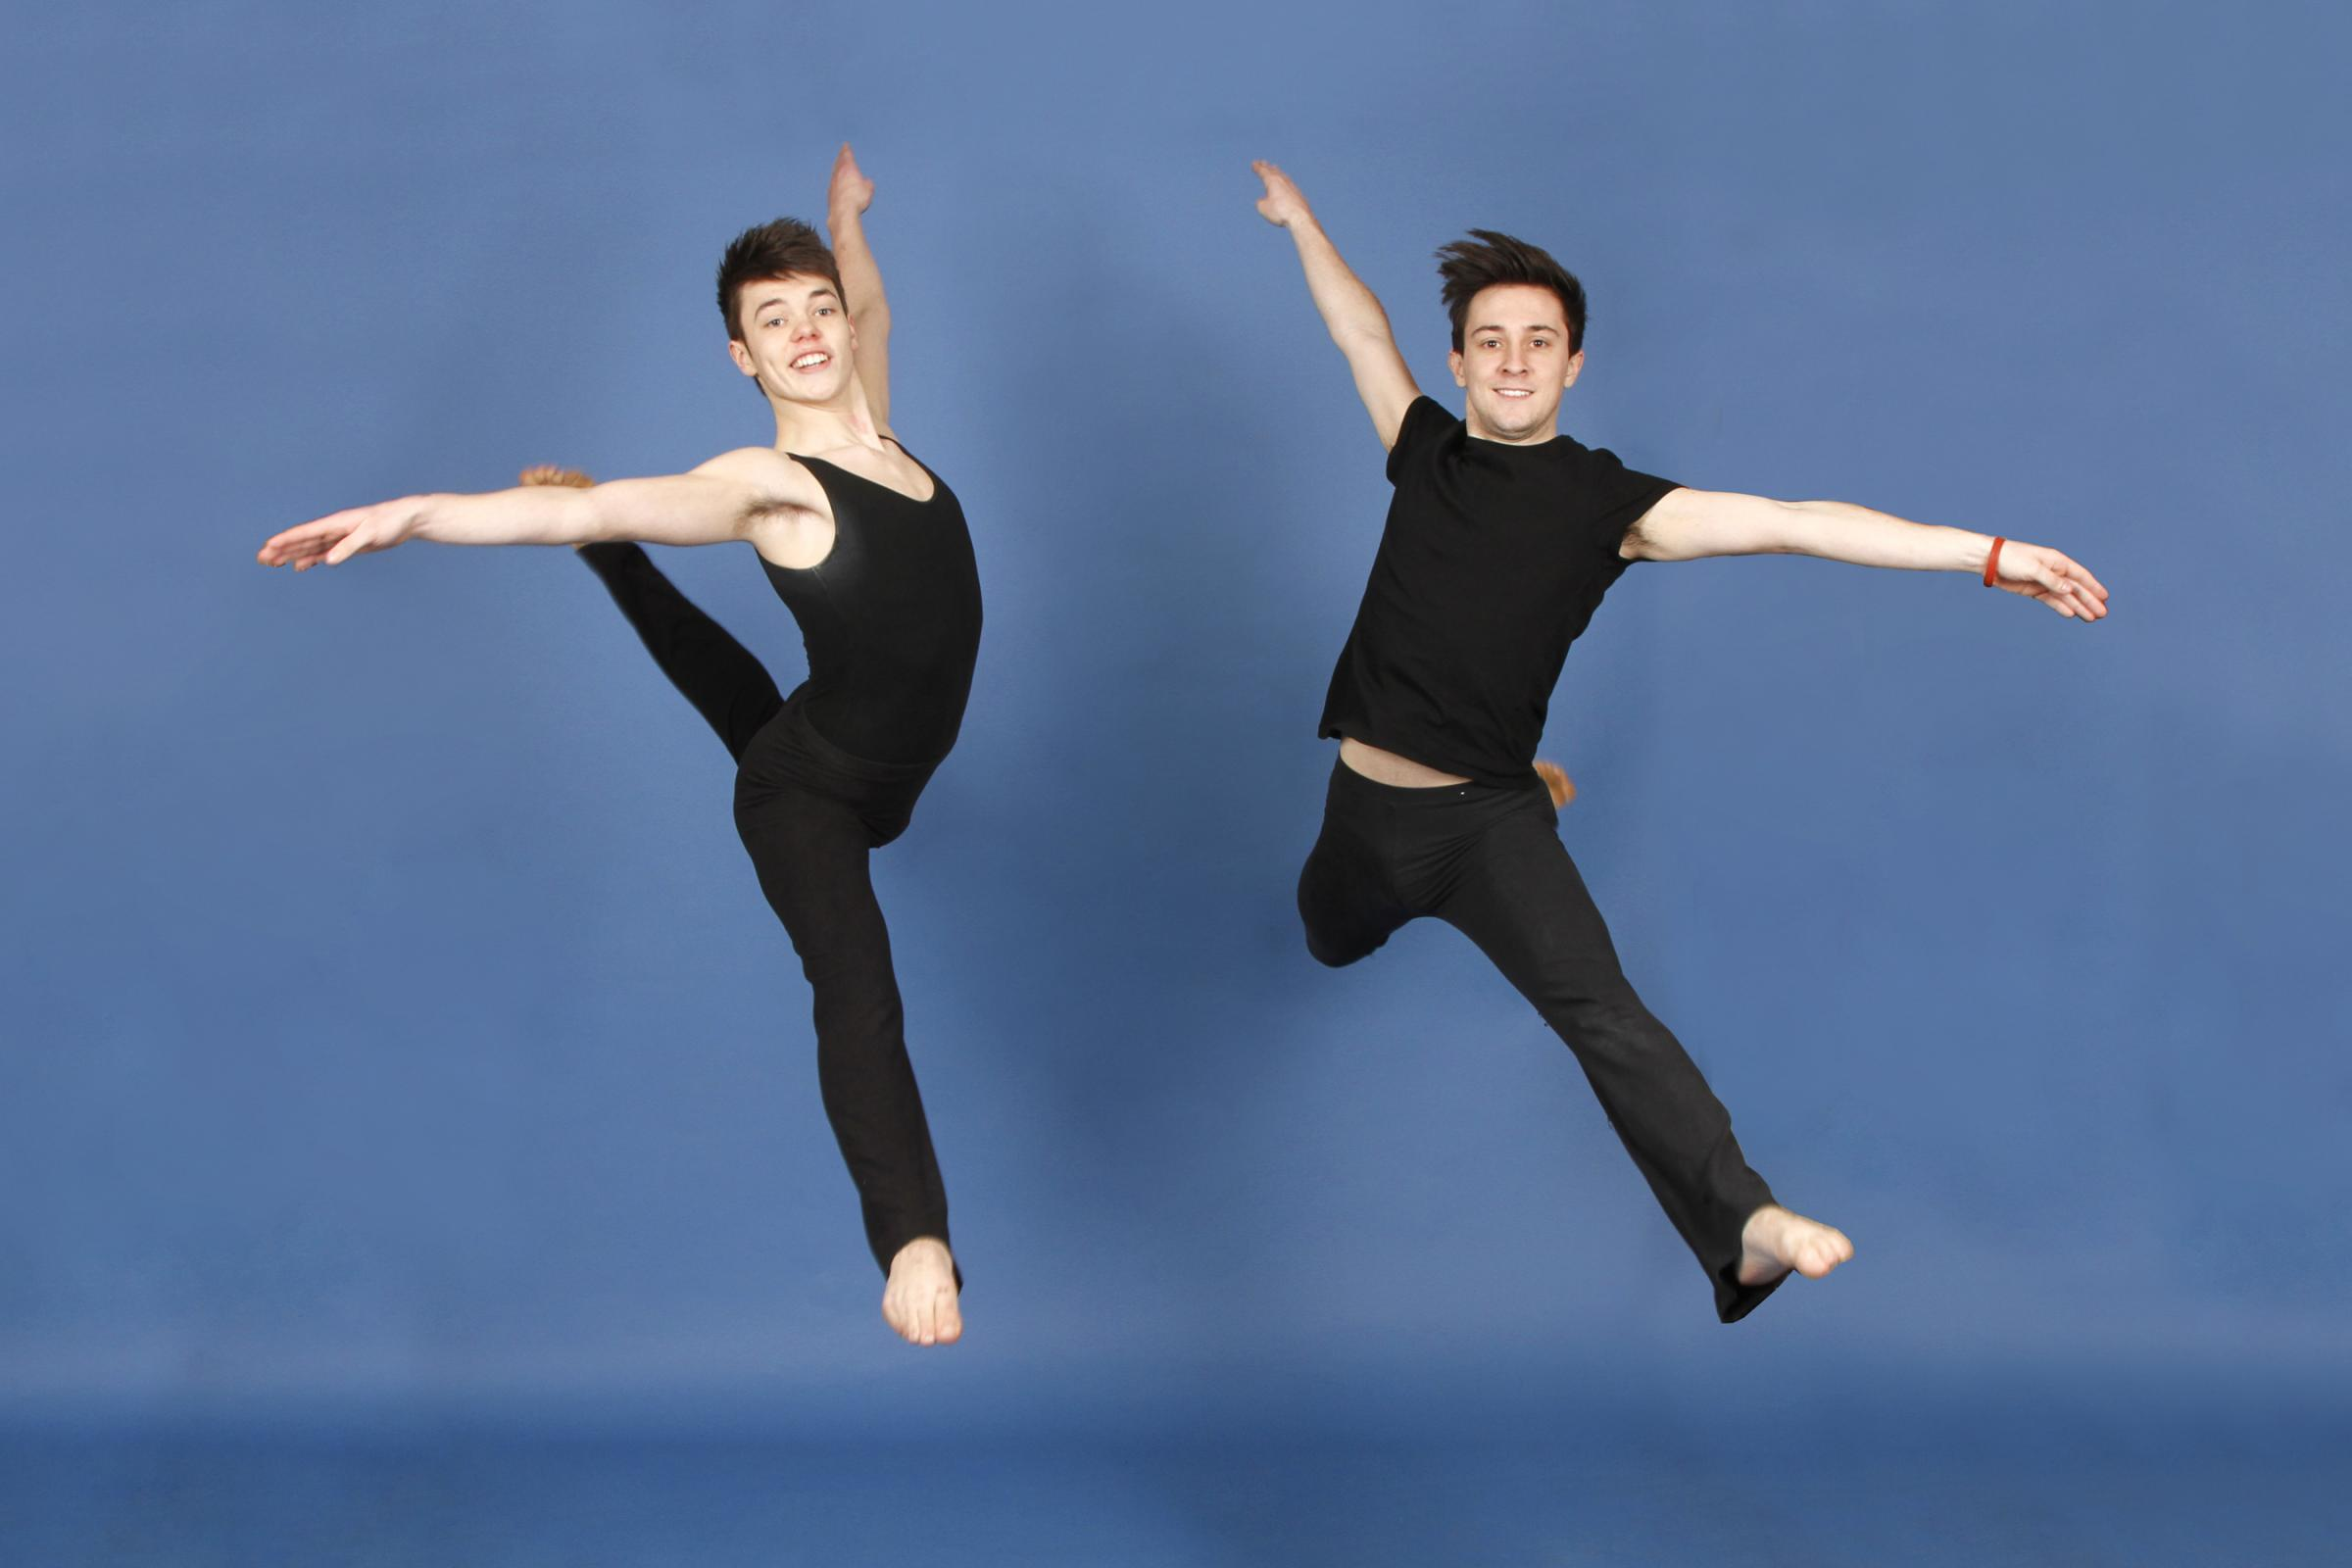 Joel Cooper who won the highest mark for Lyrical and modern section 2013 and Sam Wall who won Senior Championship section 2013